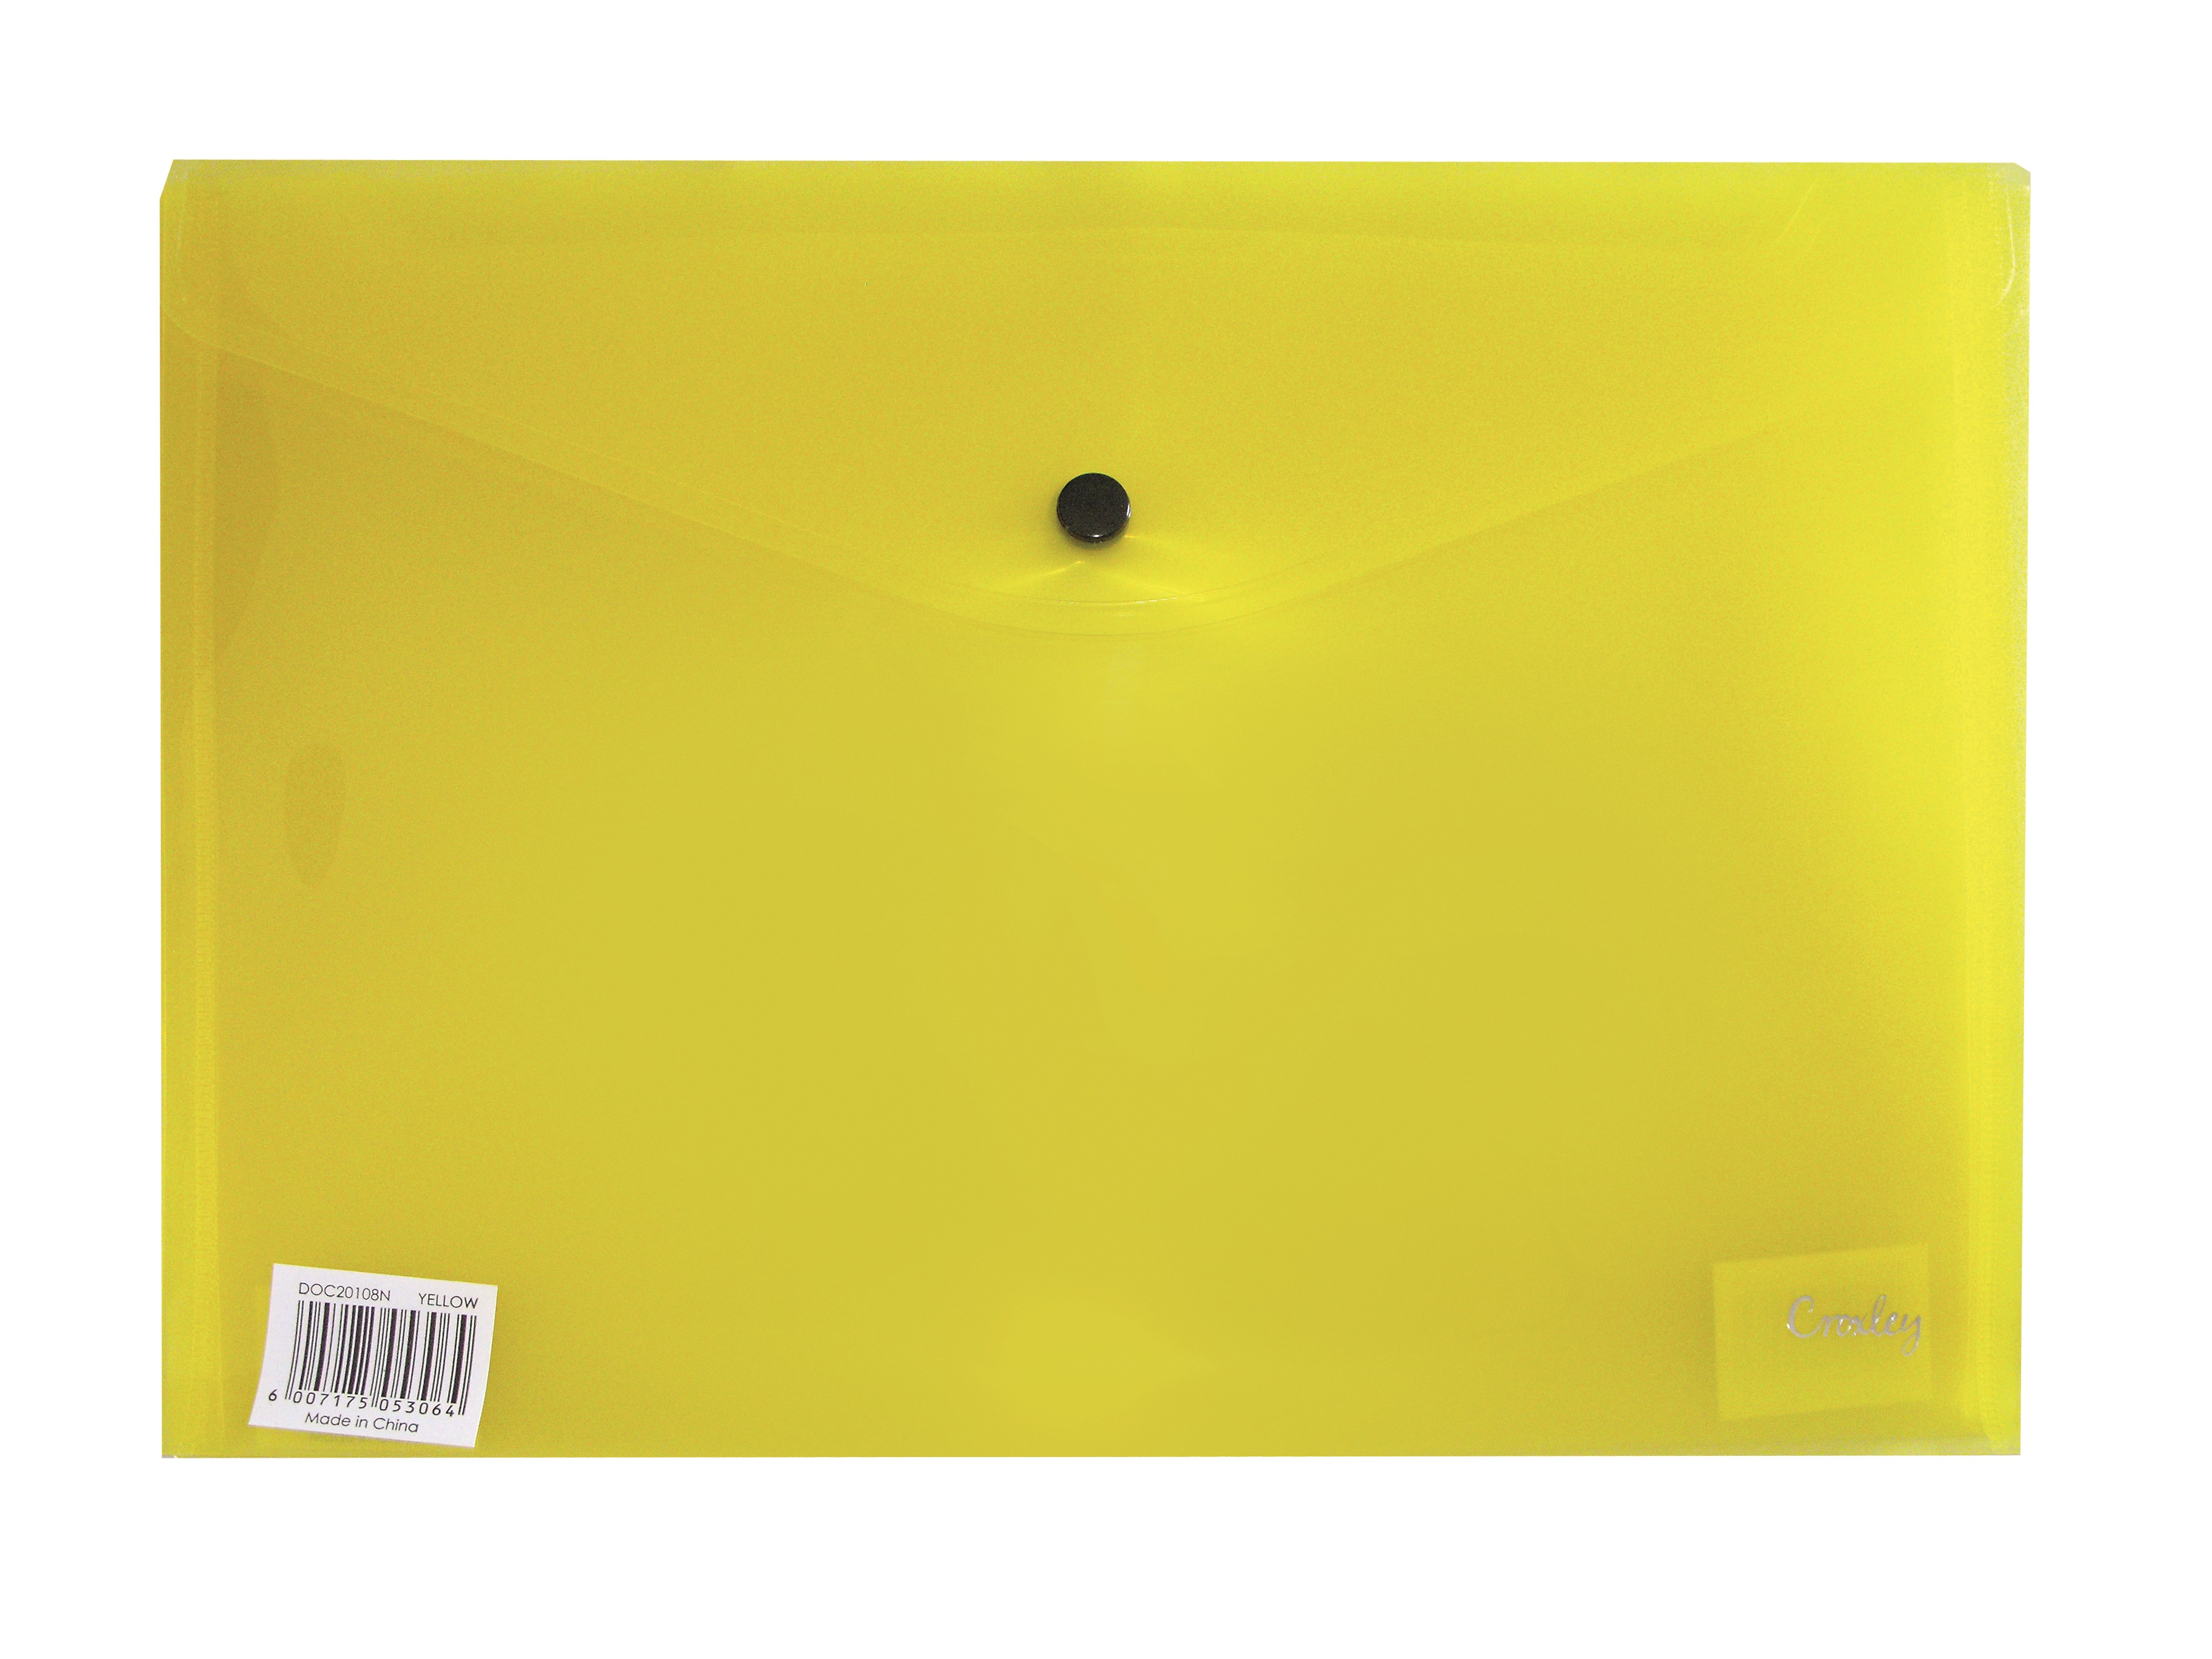 Croxley A4 Envelope with Button - Yellow PK 12